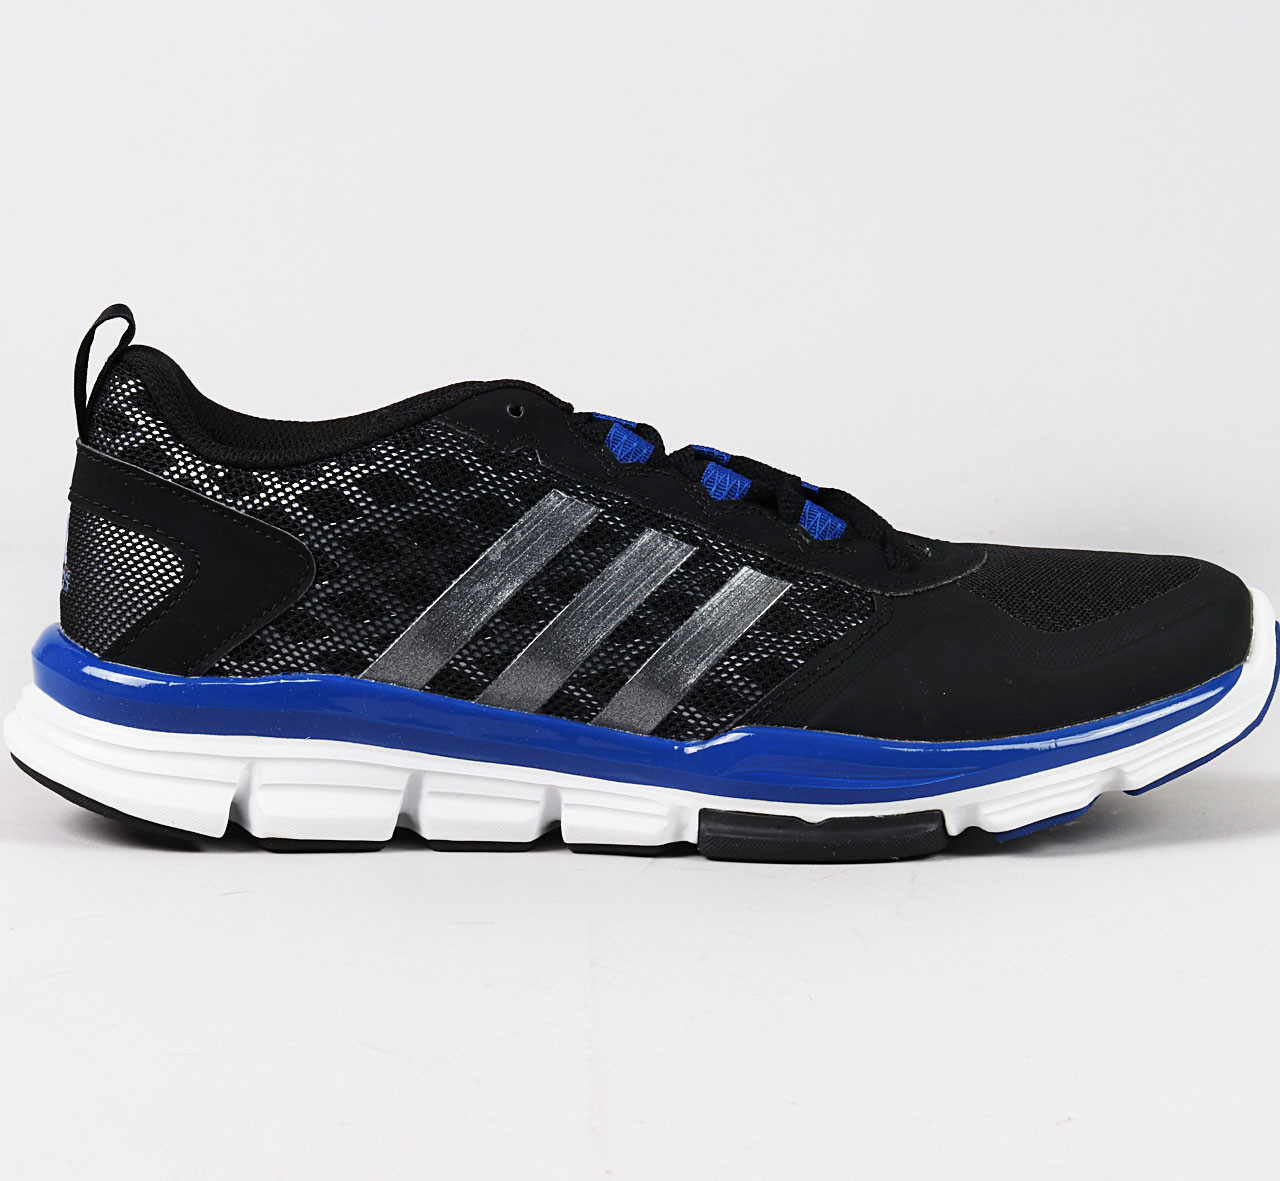 Size 8 Adidas Speed Trainer 2 Shoes